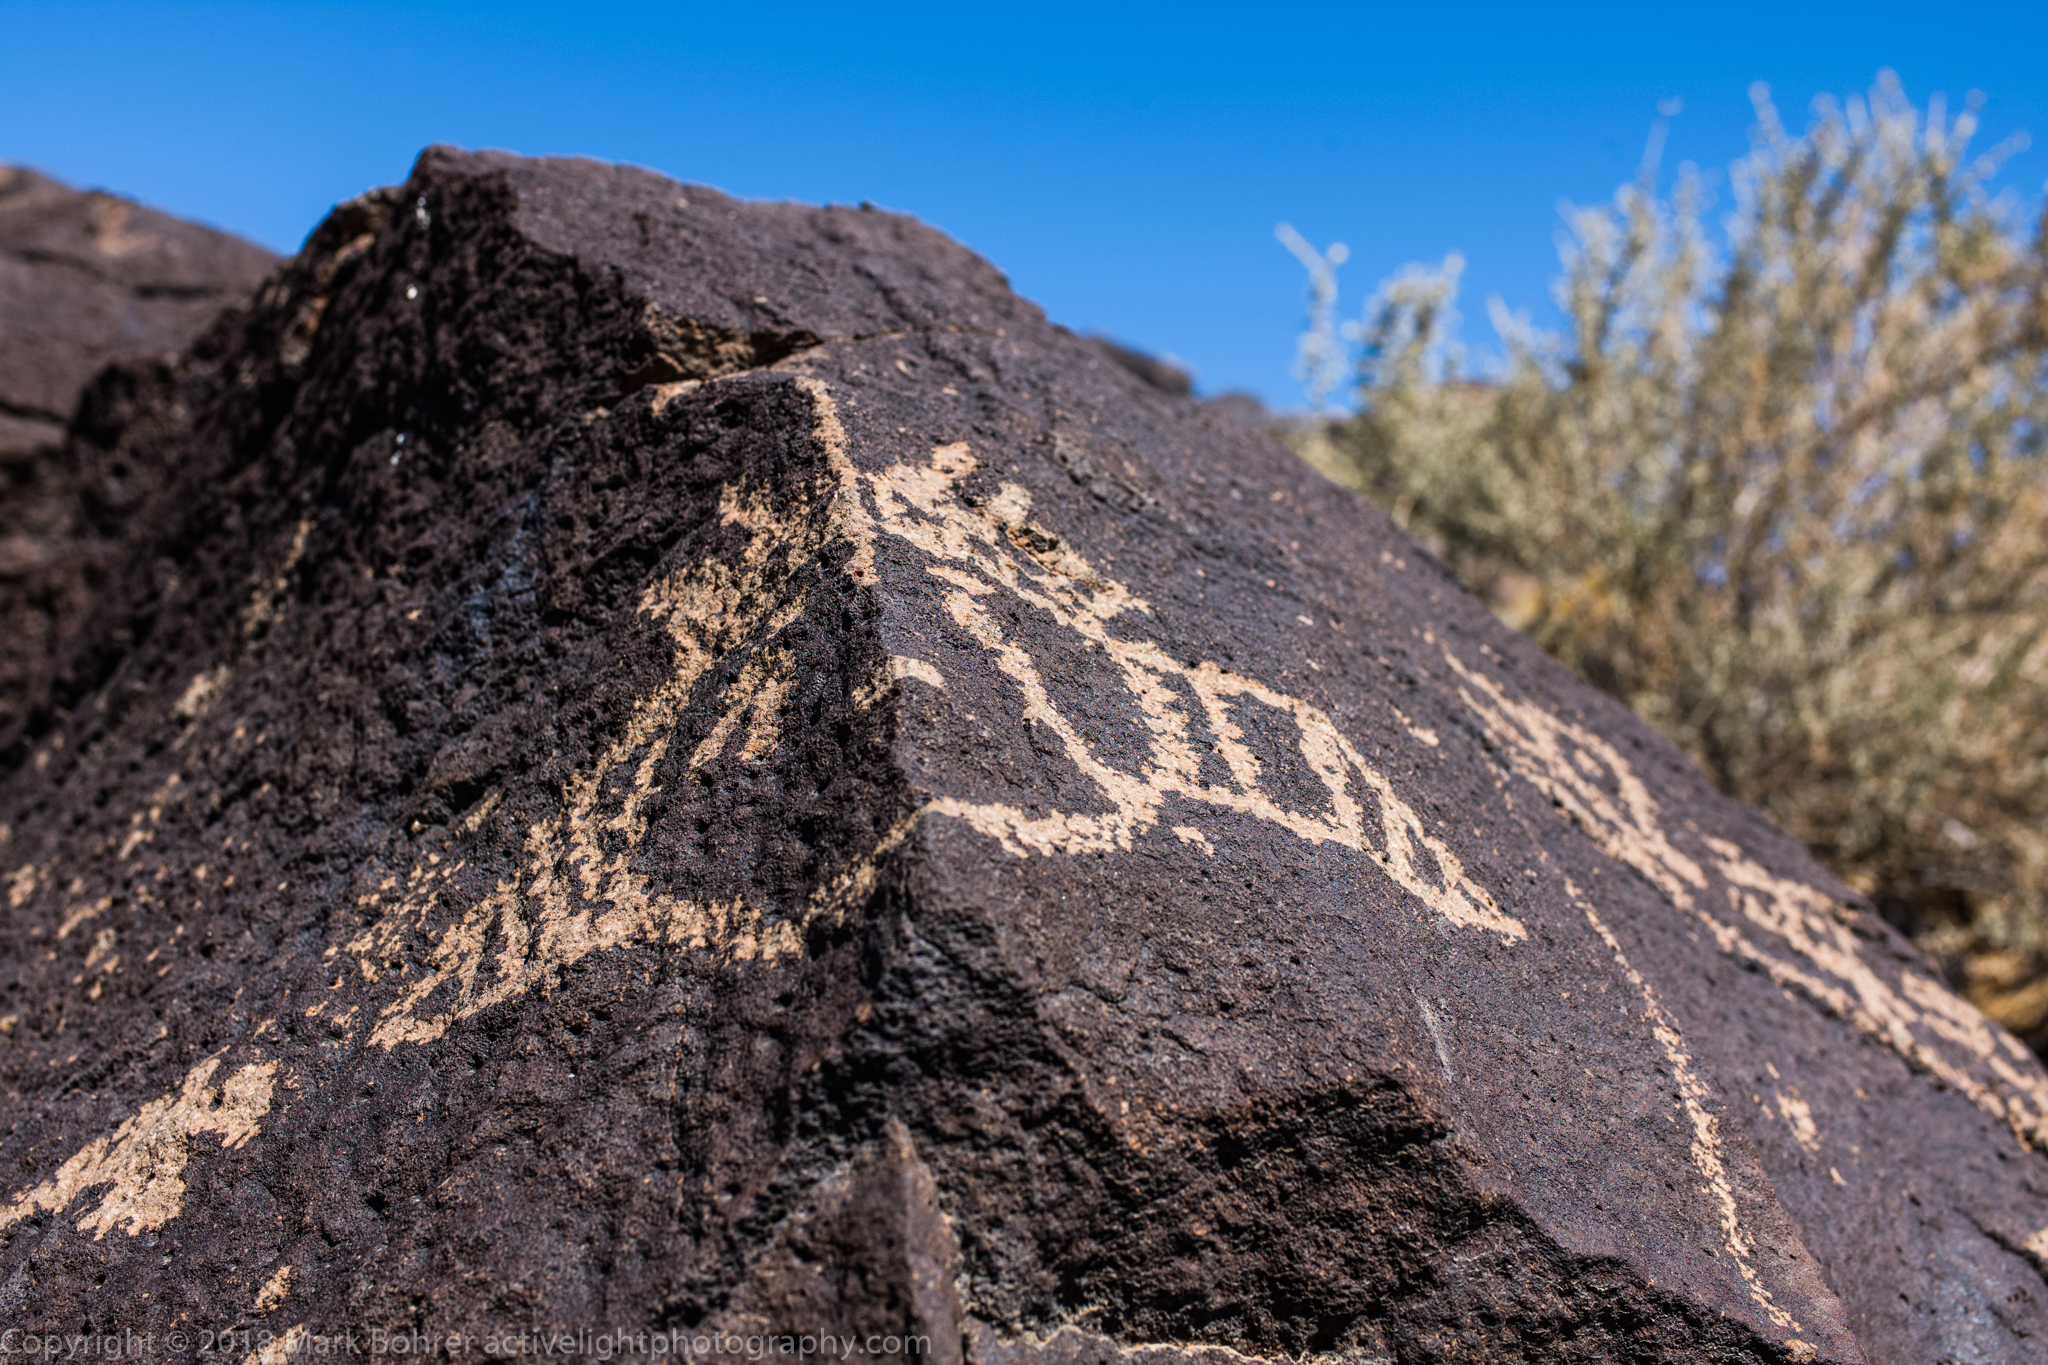 Clan mask, Piedras Marcadas, Petroglyph National Monument